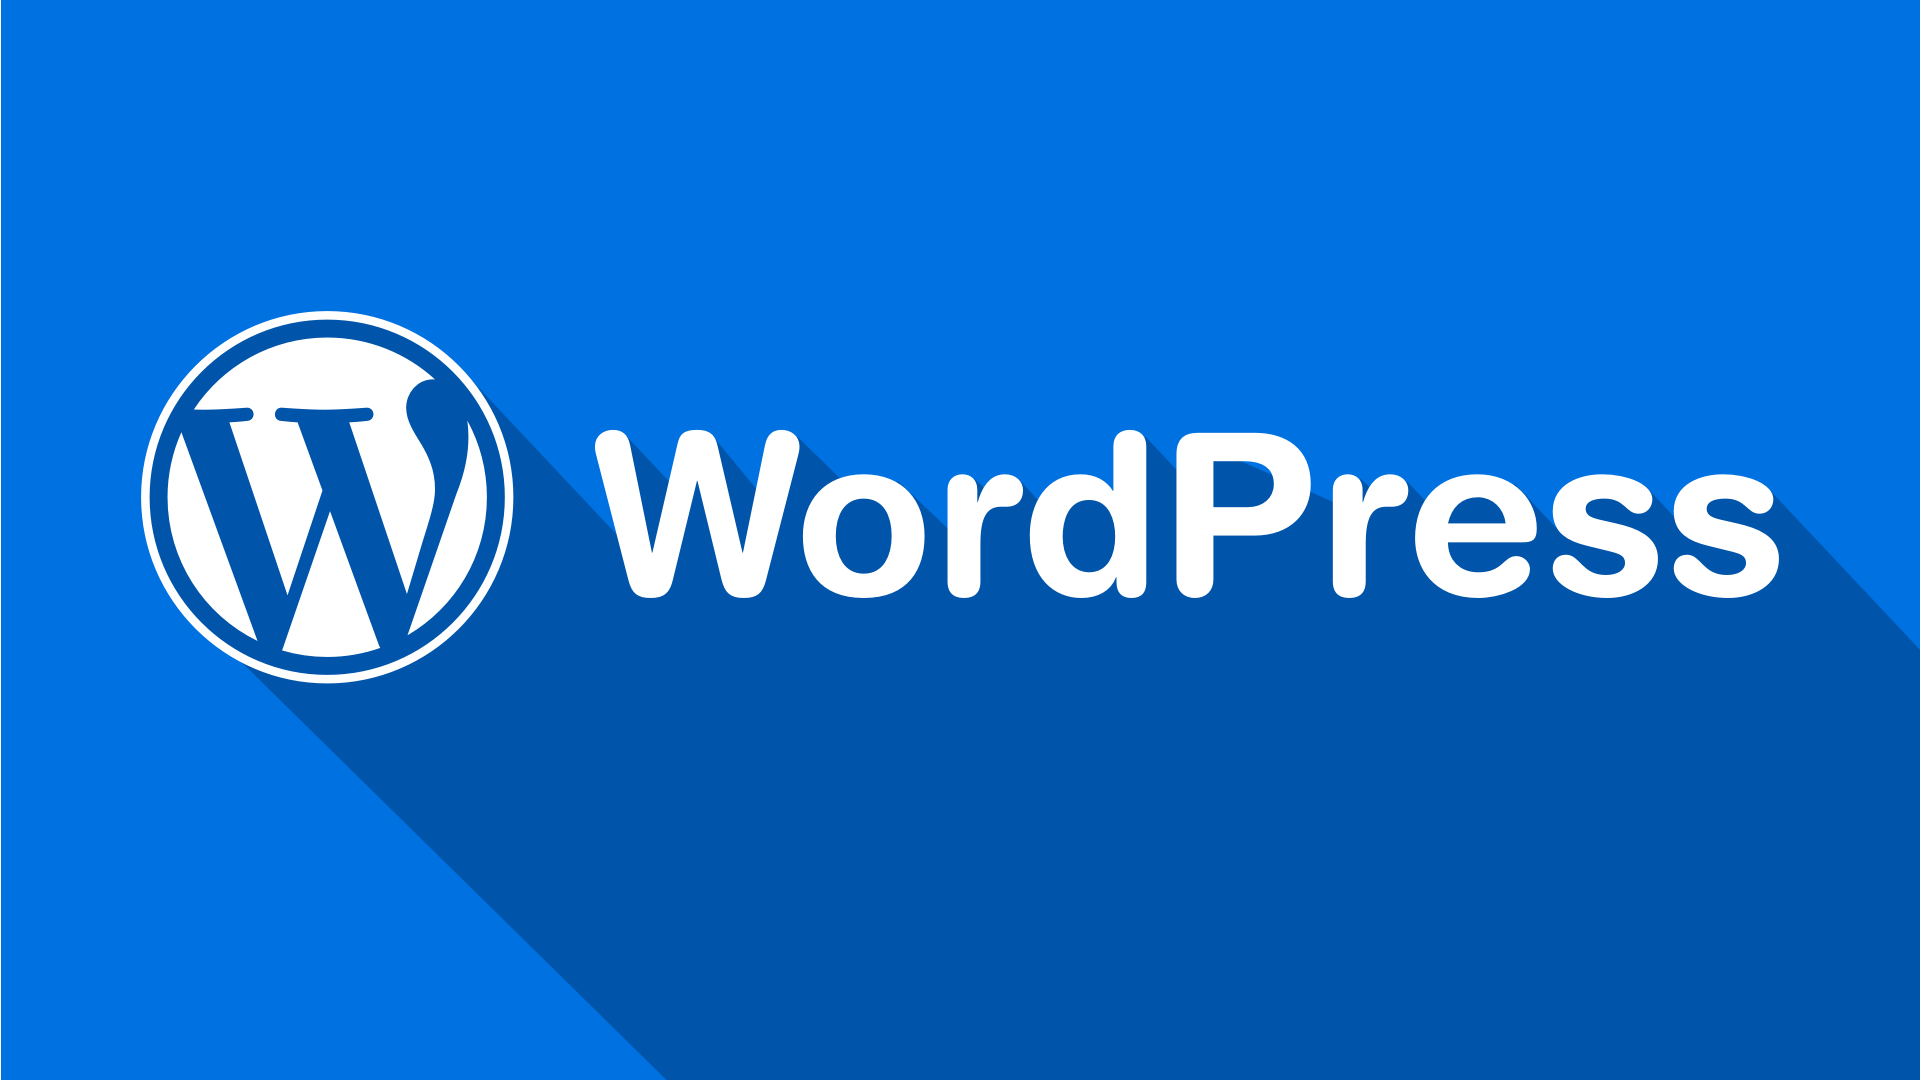 WordPress: What it is and How it helps.